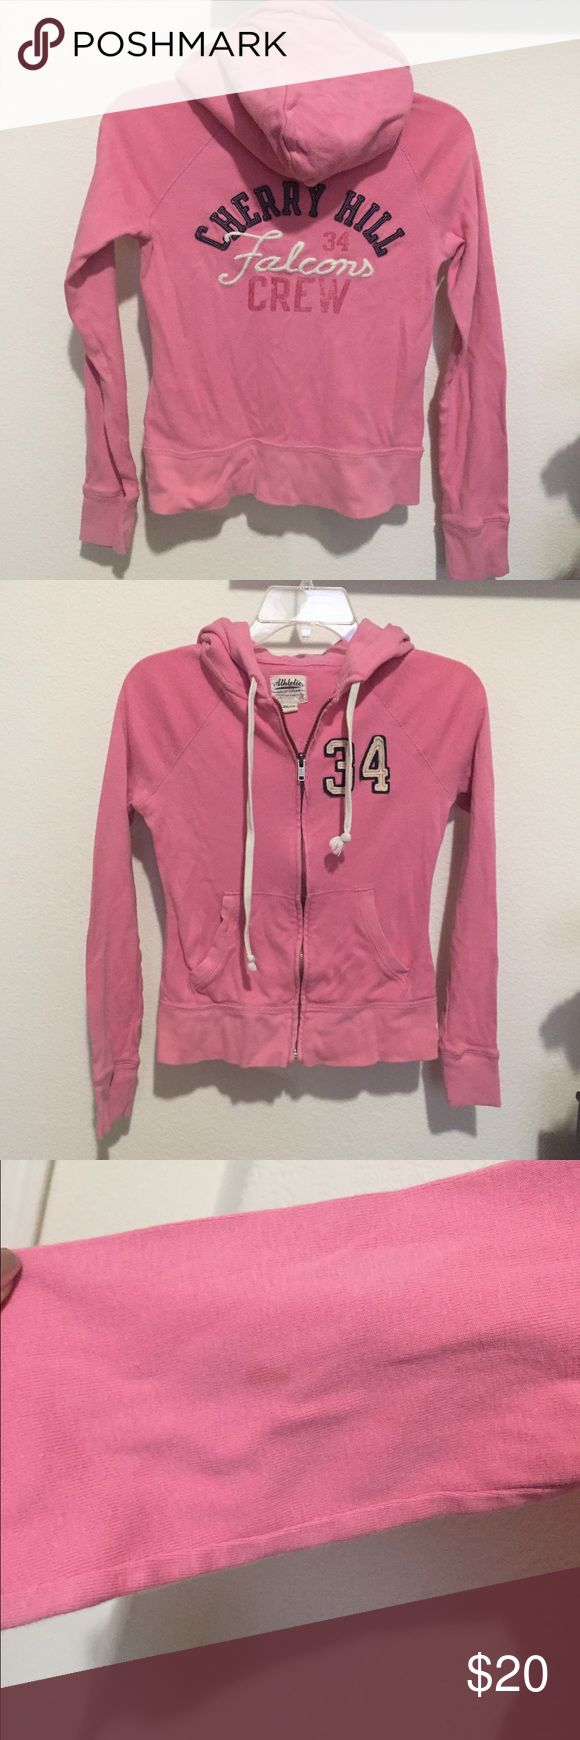 Cherry hill pink zip up jacket American Eagle pink zip up hoodie jacket/sweater. Super cute. Says cherry hill falcons crew on the back along with a number 34. Has a small stain on the arm but it's not noticeable as seen in the picture. American Eagle Outfitters Jackets & Coats